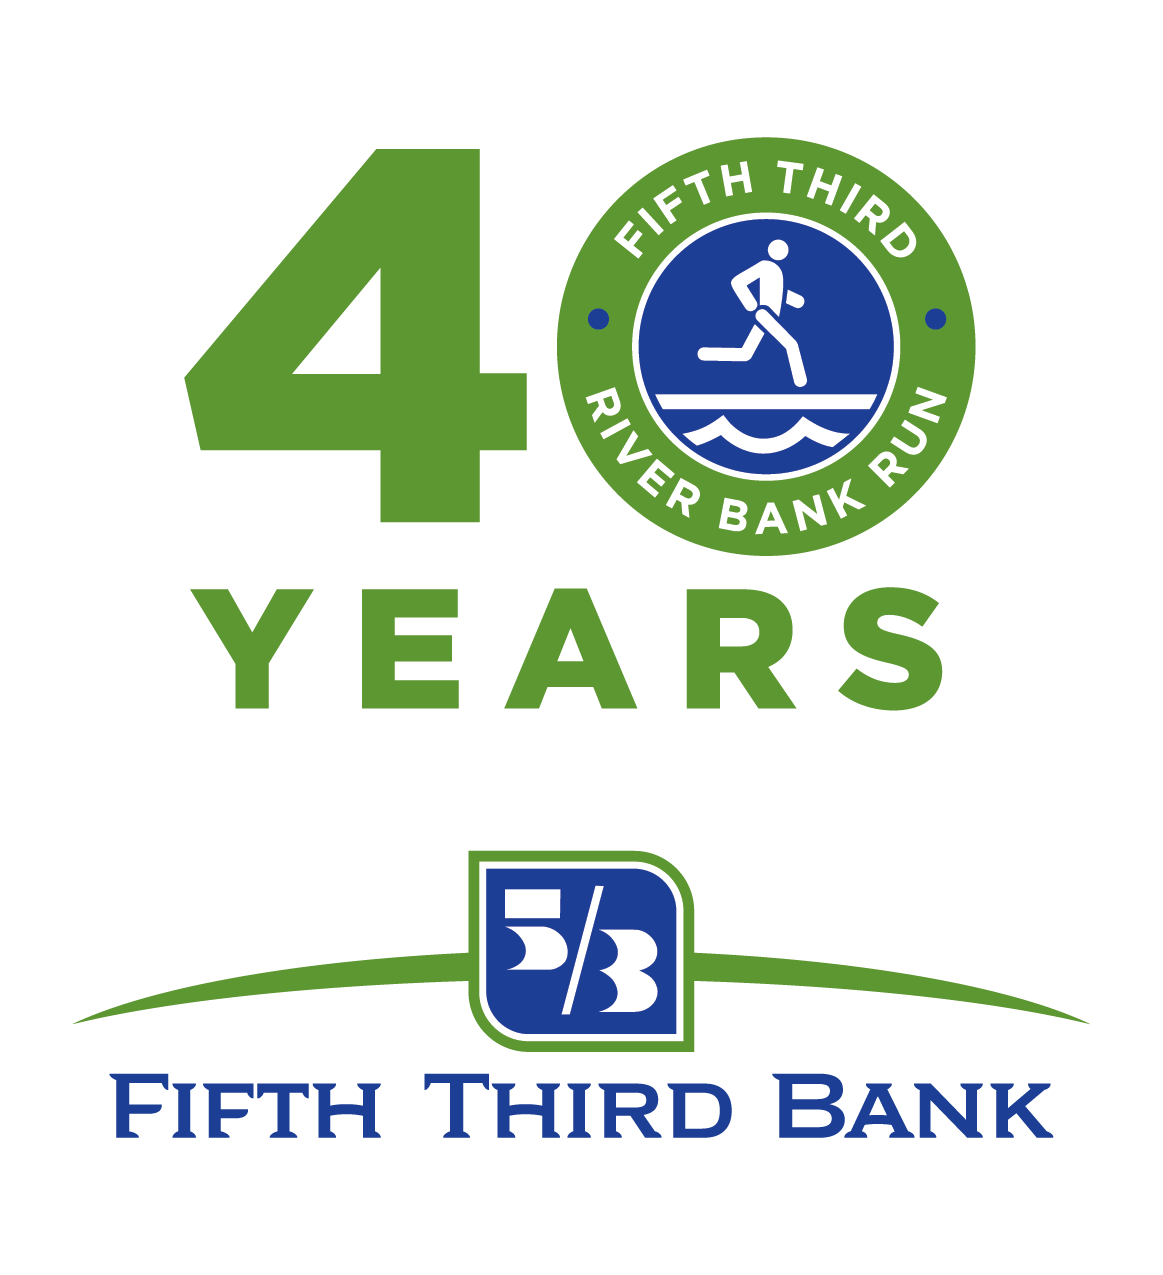 Fifth Third River Bank Run | Fort Wayne Running Club